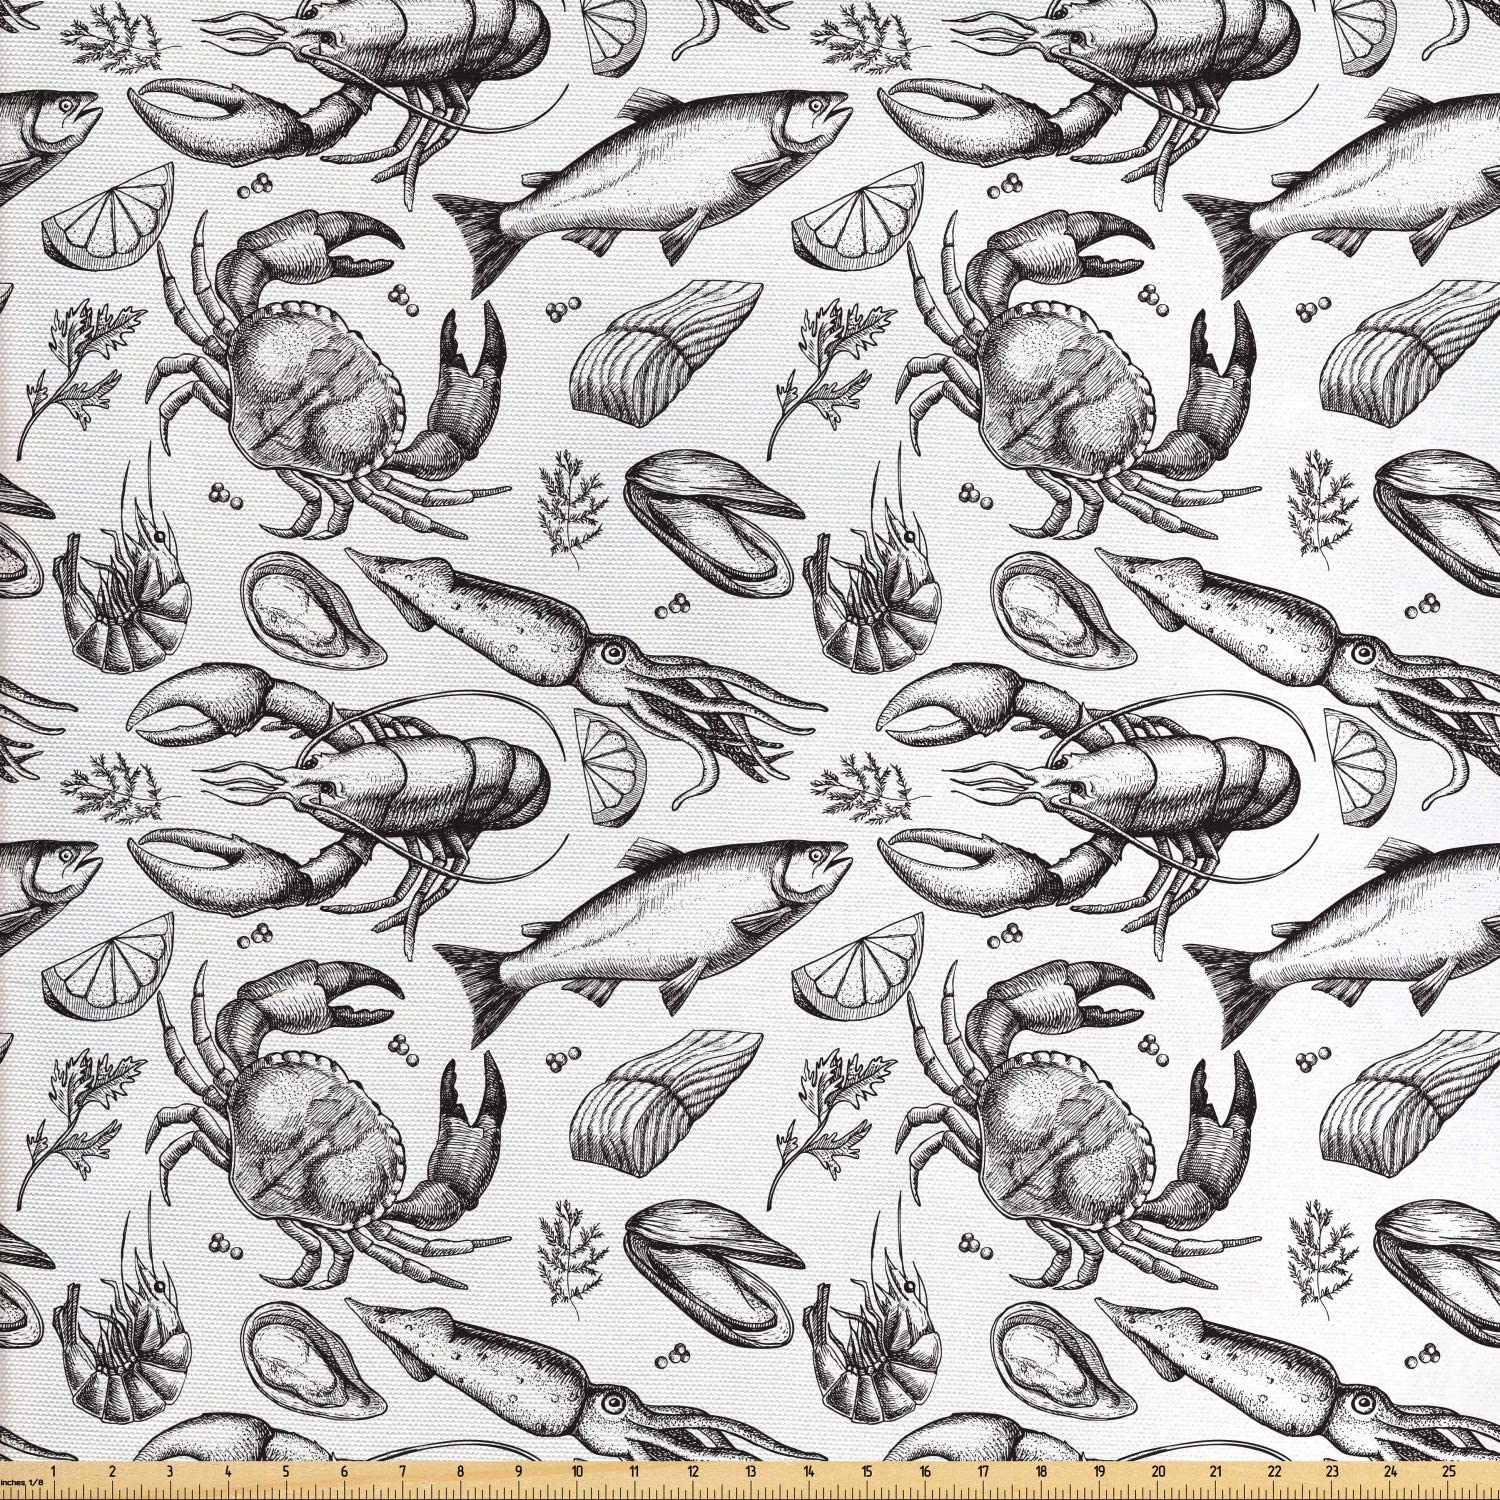 Ambesonne Crabs Fabric by The Yard, Sea Animals a Vintage Illustration of Hand Drawn Seafood Pattern Artwork Print, Decorative Fabric for Upholstery and Home Accents, 1 Yard, White and Black